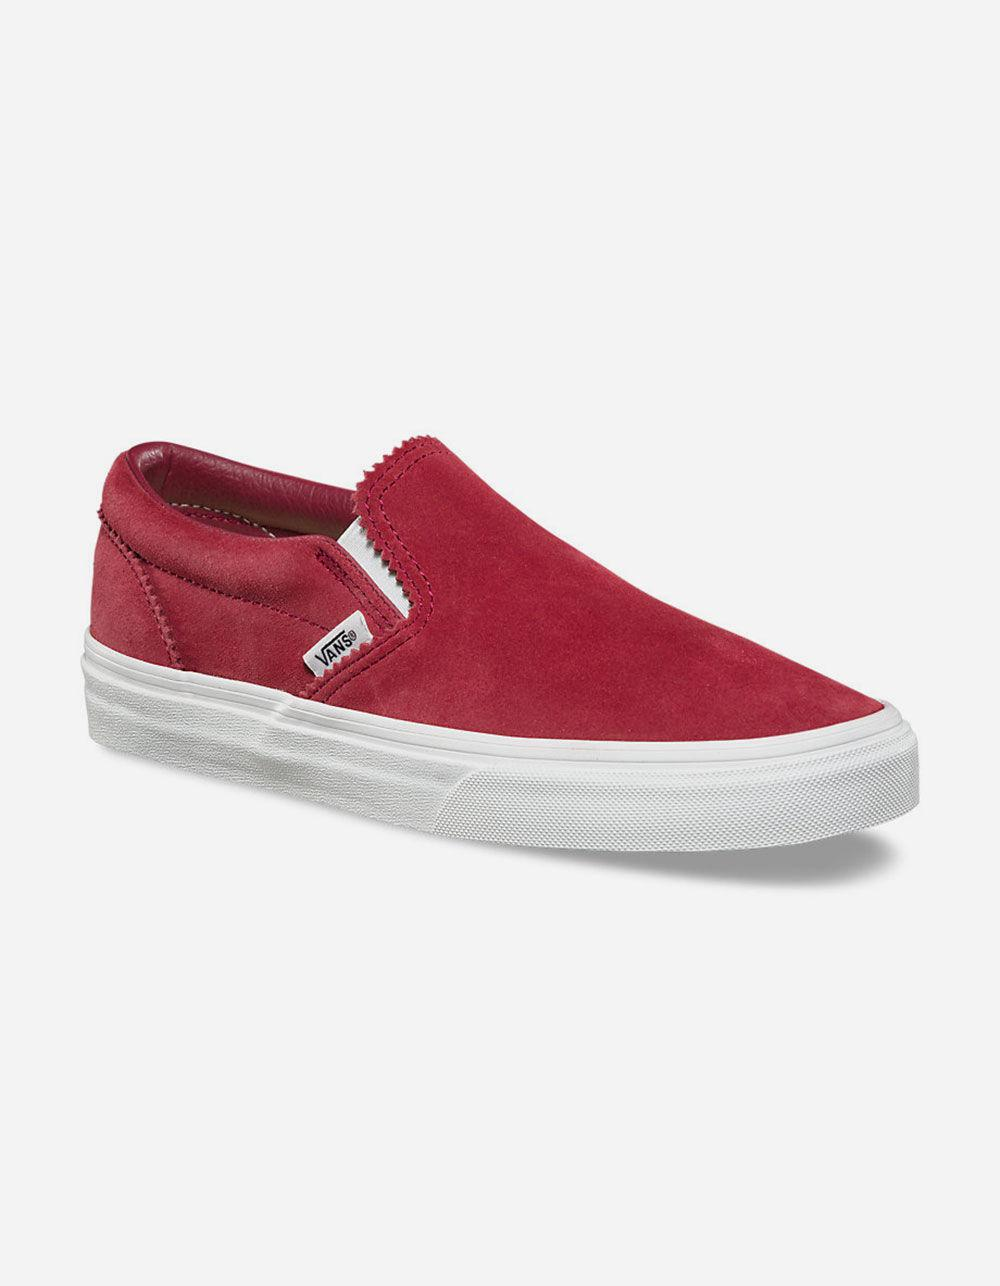 6f37f74392 Lyst - Vans Pinked Suede Apple Butter   Blanc De Blanc Classic Slip ...